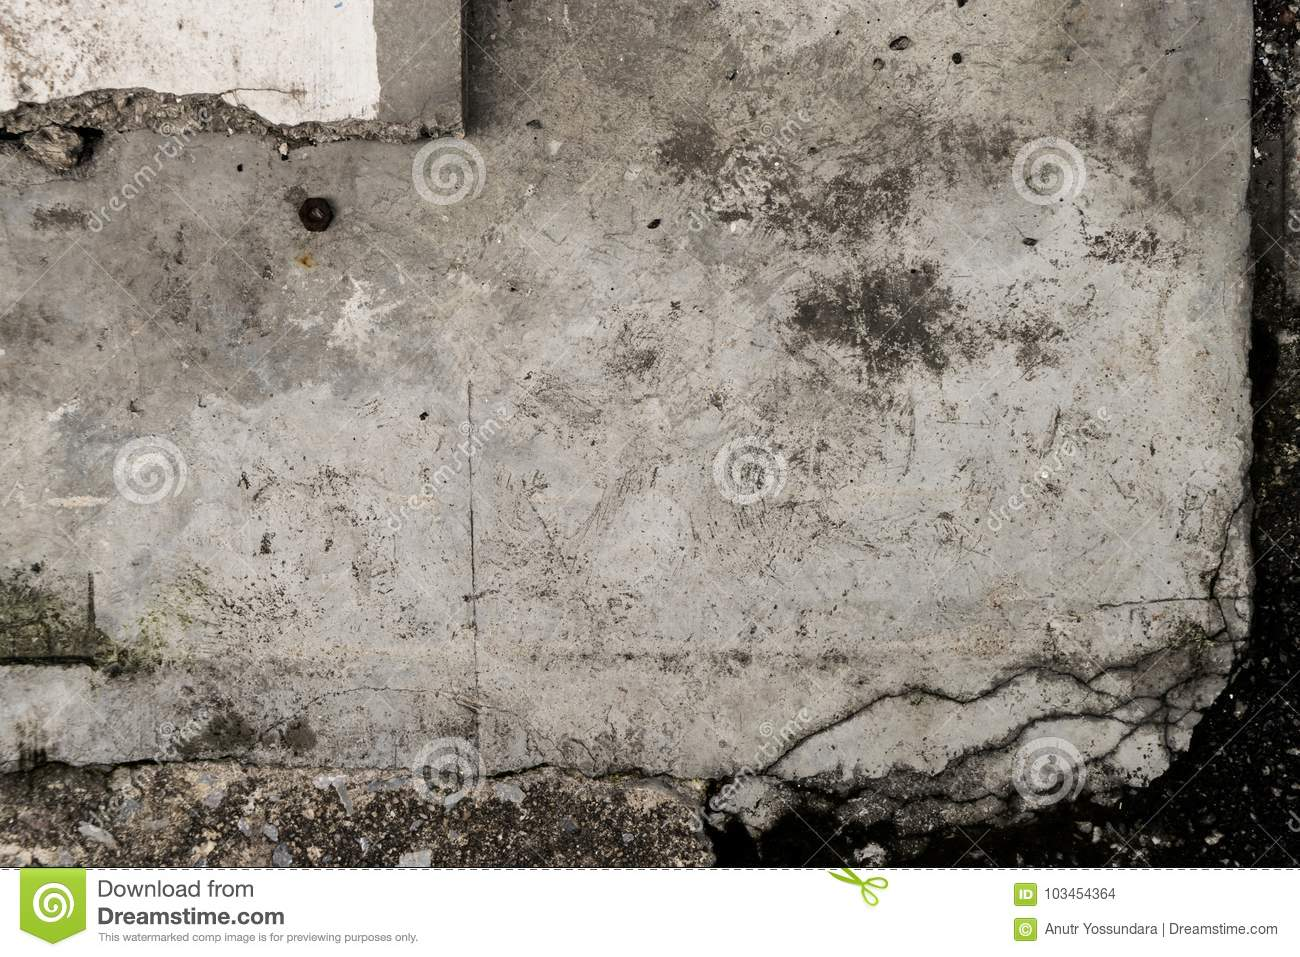 Grungy concrete plate on black ground framing